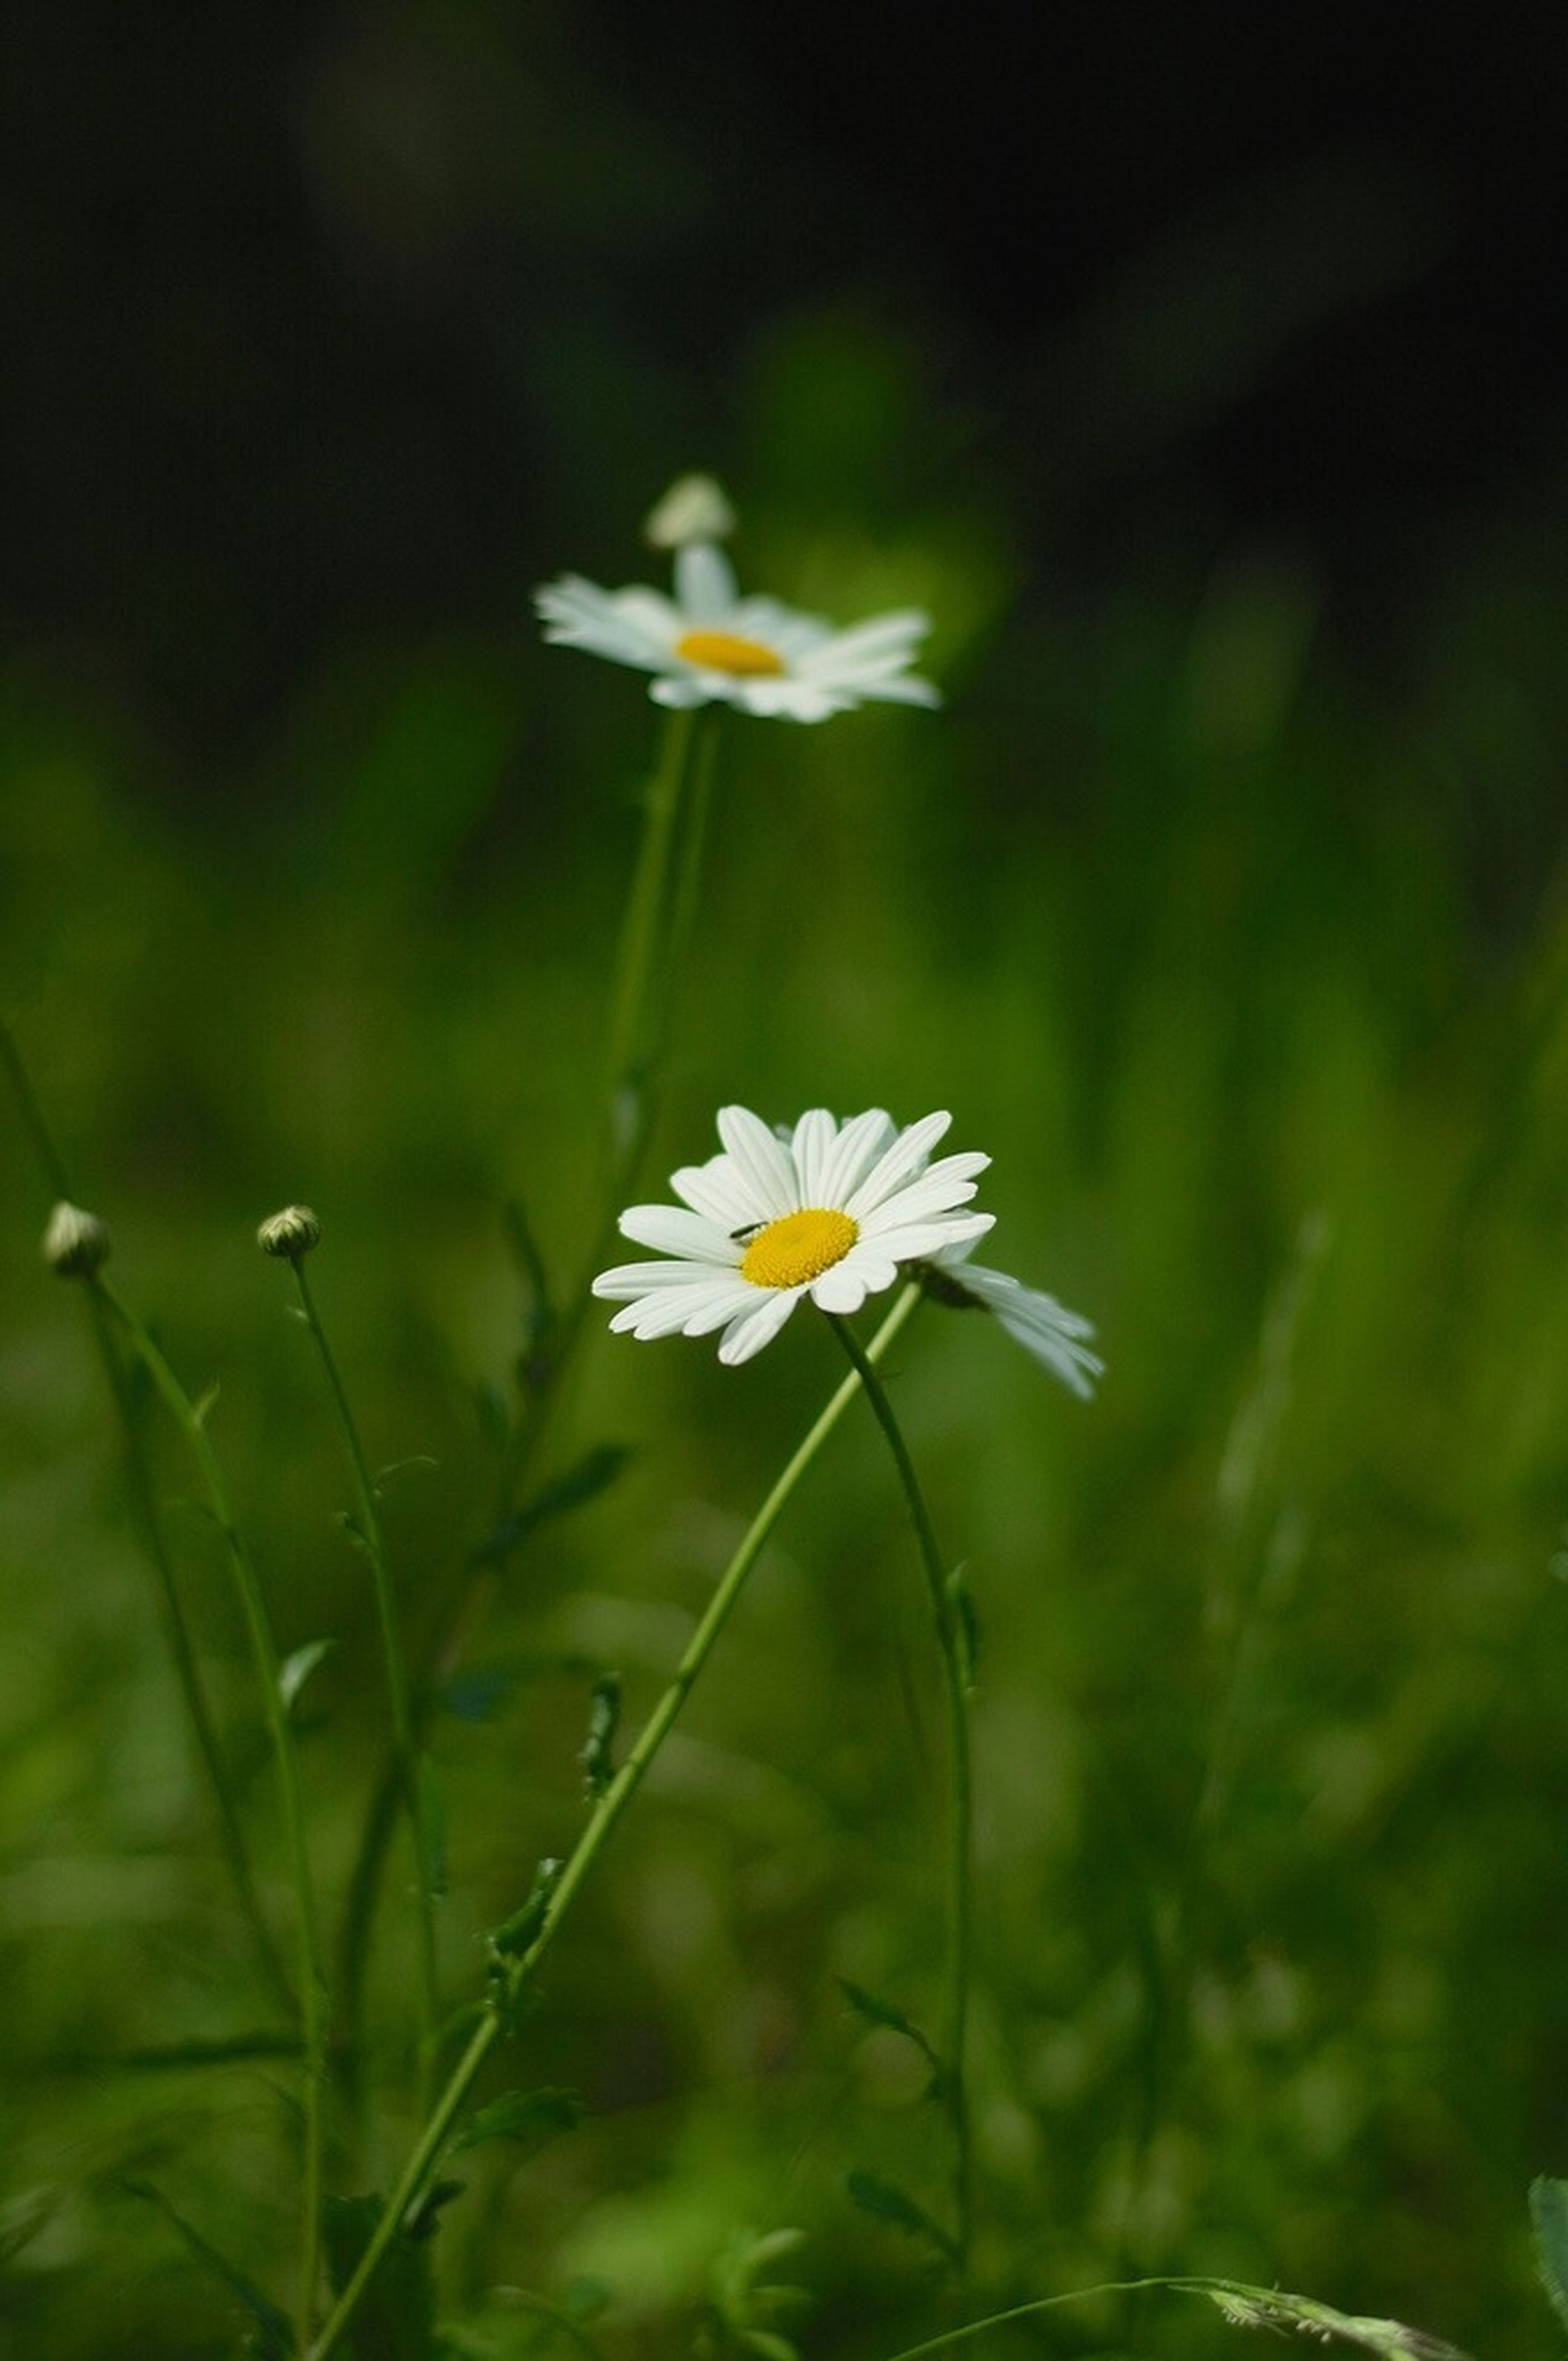 flower, freshness, petal, fragility, growth, flower head, beauty in nature, blooming, focus on foreground, white color, stem, daisy, nature, plant, close-up, field, pollen, in bloom, selective focus, single flower